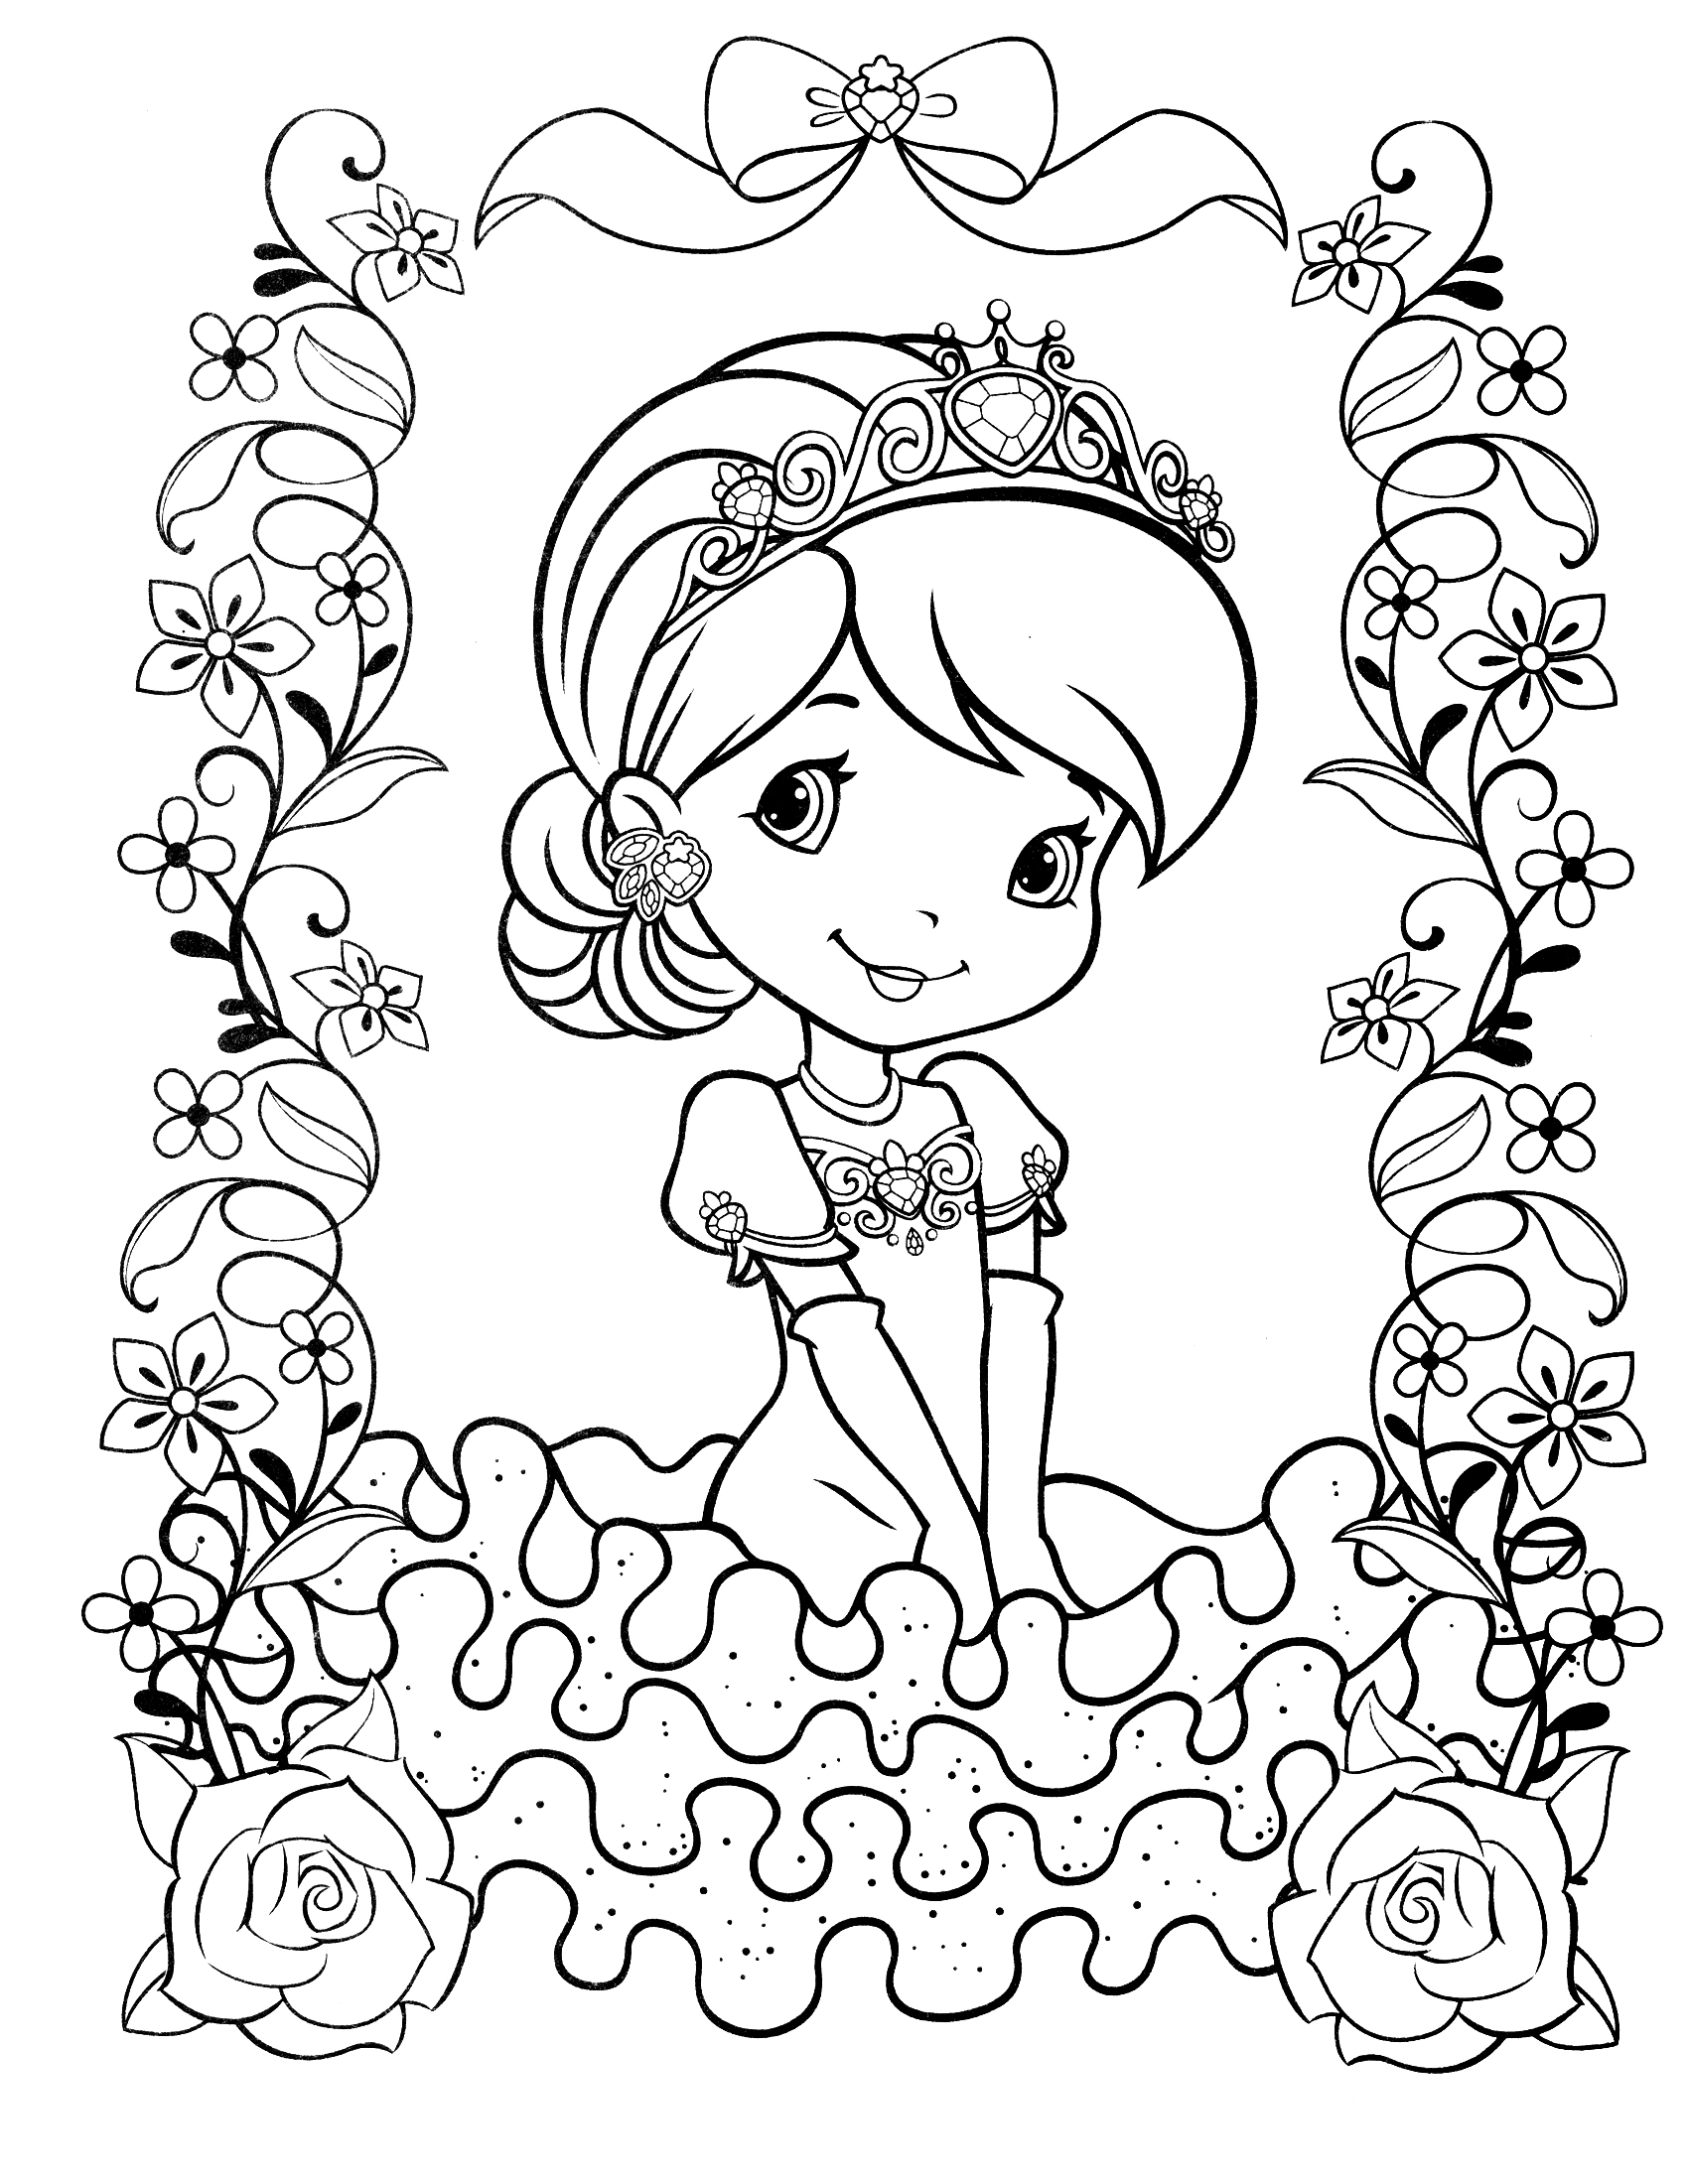 coloring pages of strawberry shortcake strawberry shortcake dog coloring pages at getcolorings pages shortcake coloring strawberry of